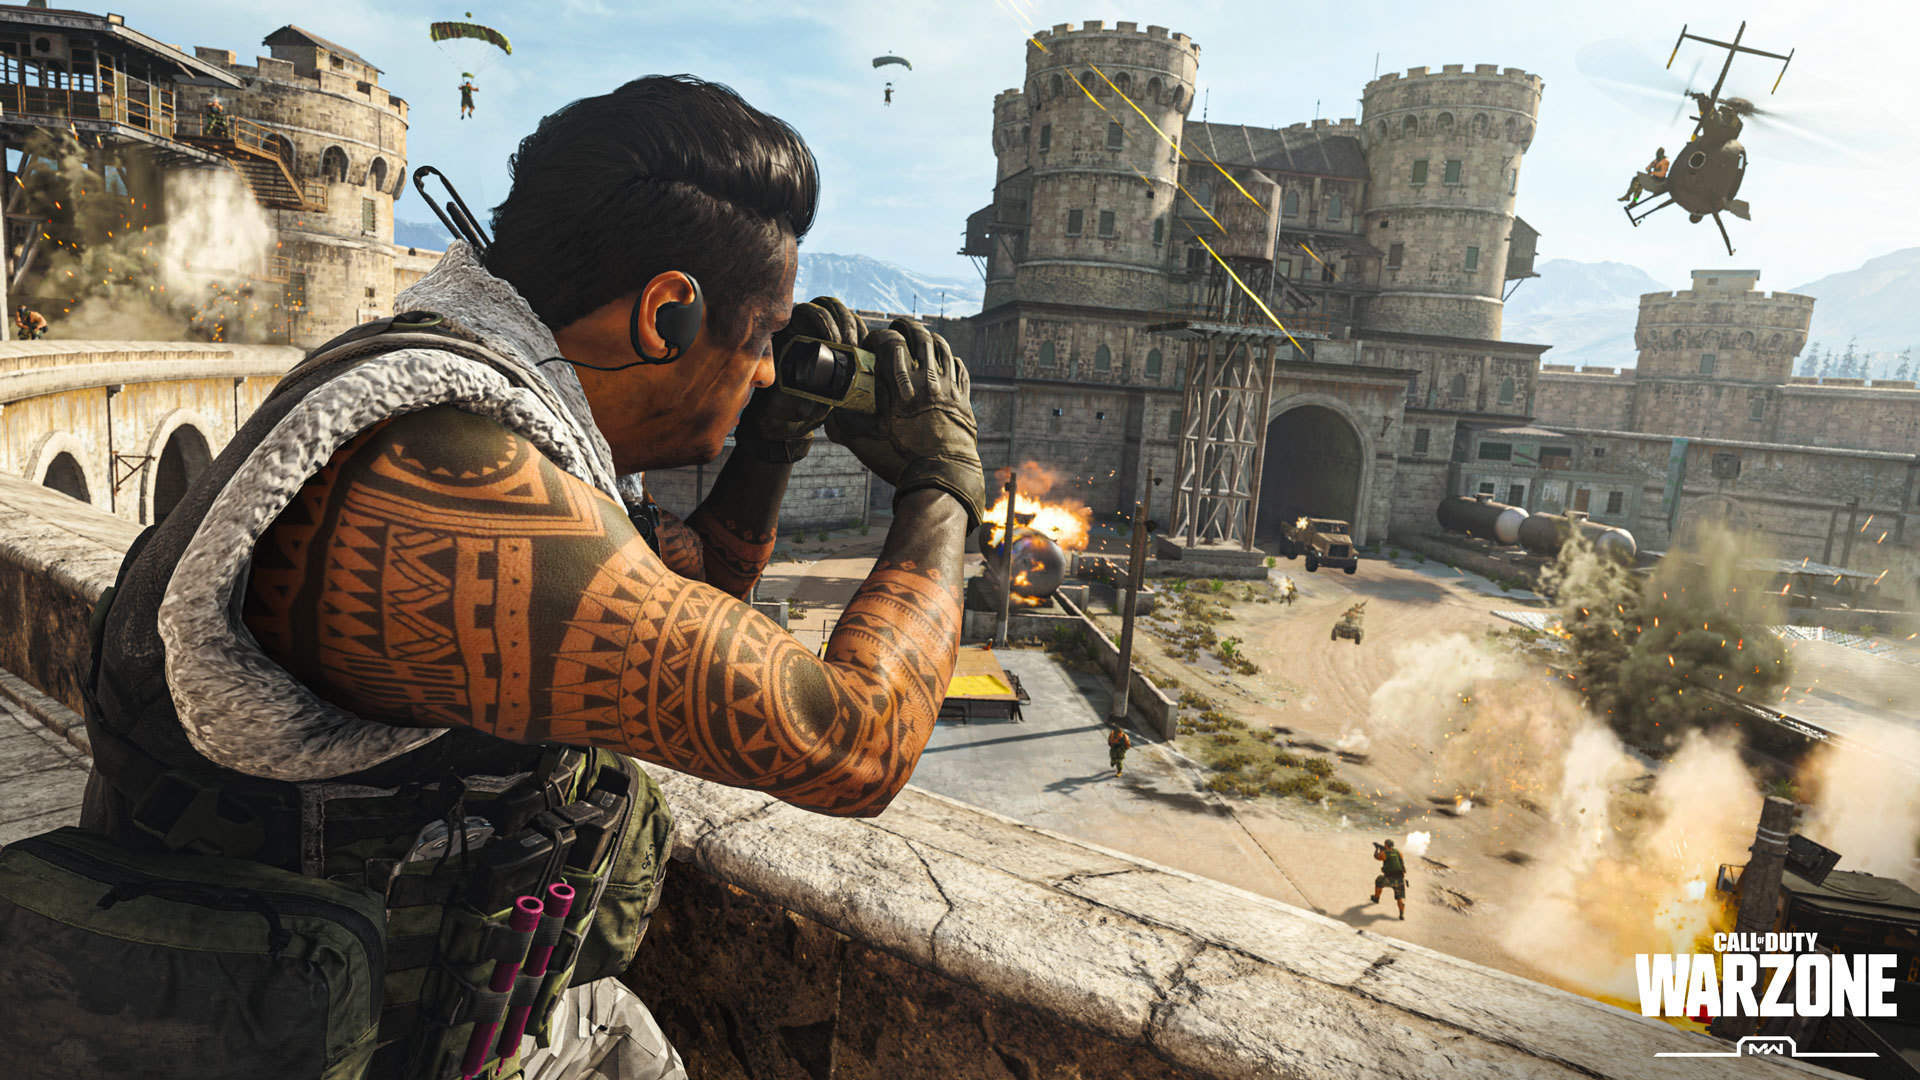 Call of Duty Warzone Battle Royale is Free To Play